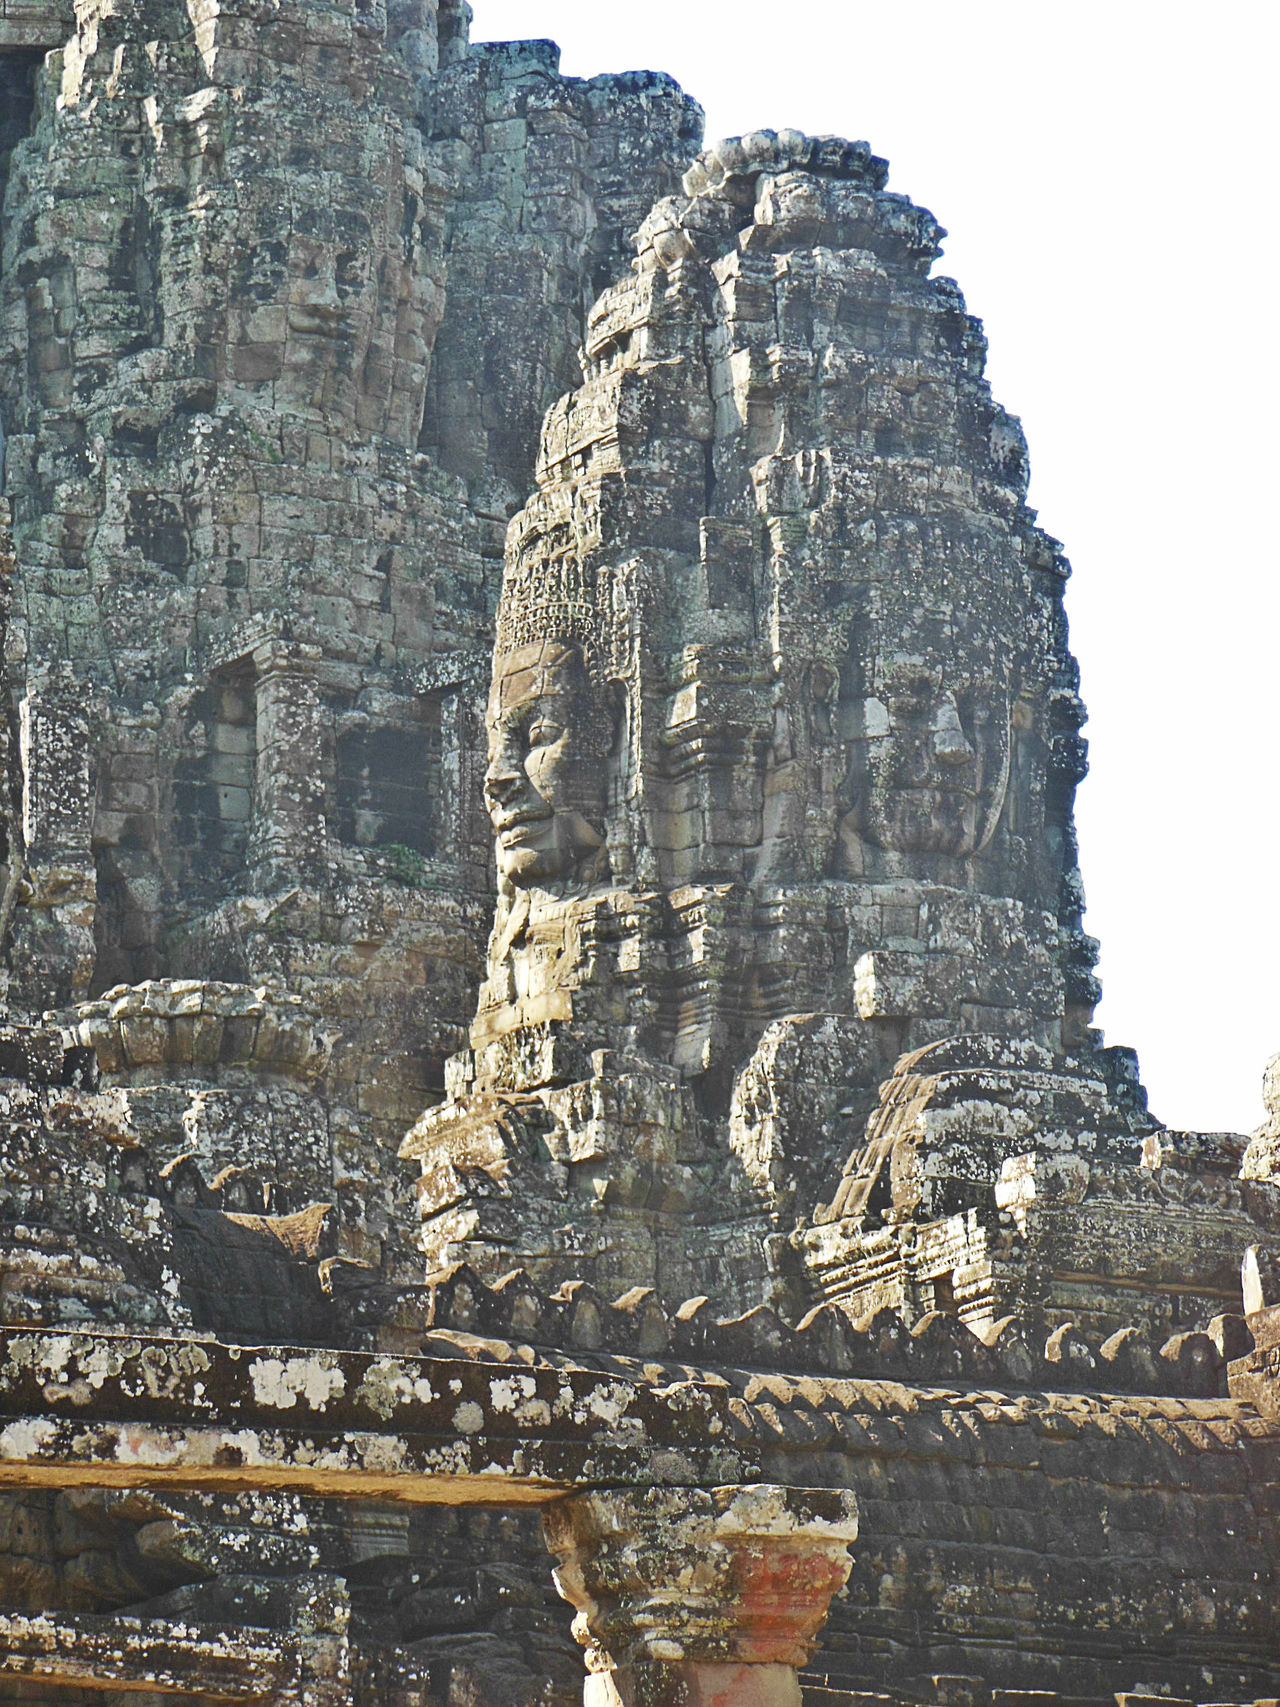 Ancient Ancient Architecture Ancient Civilization Ancient History Angkor Thom Architecture Cambodia Eyeem Cambodia Eyeem History History Human Representation Khmer Empire No People Old Ruin Place Of Worship Place To Be  Spirituality Tourism Travel Destinations